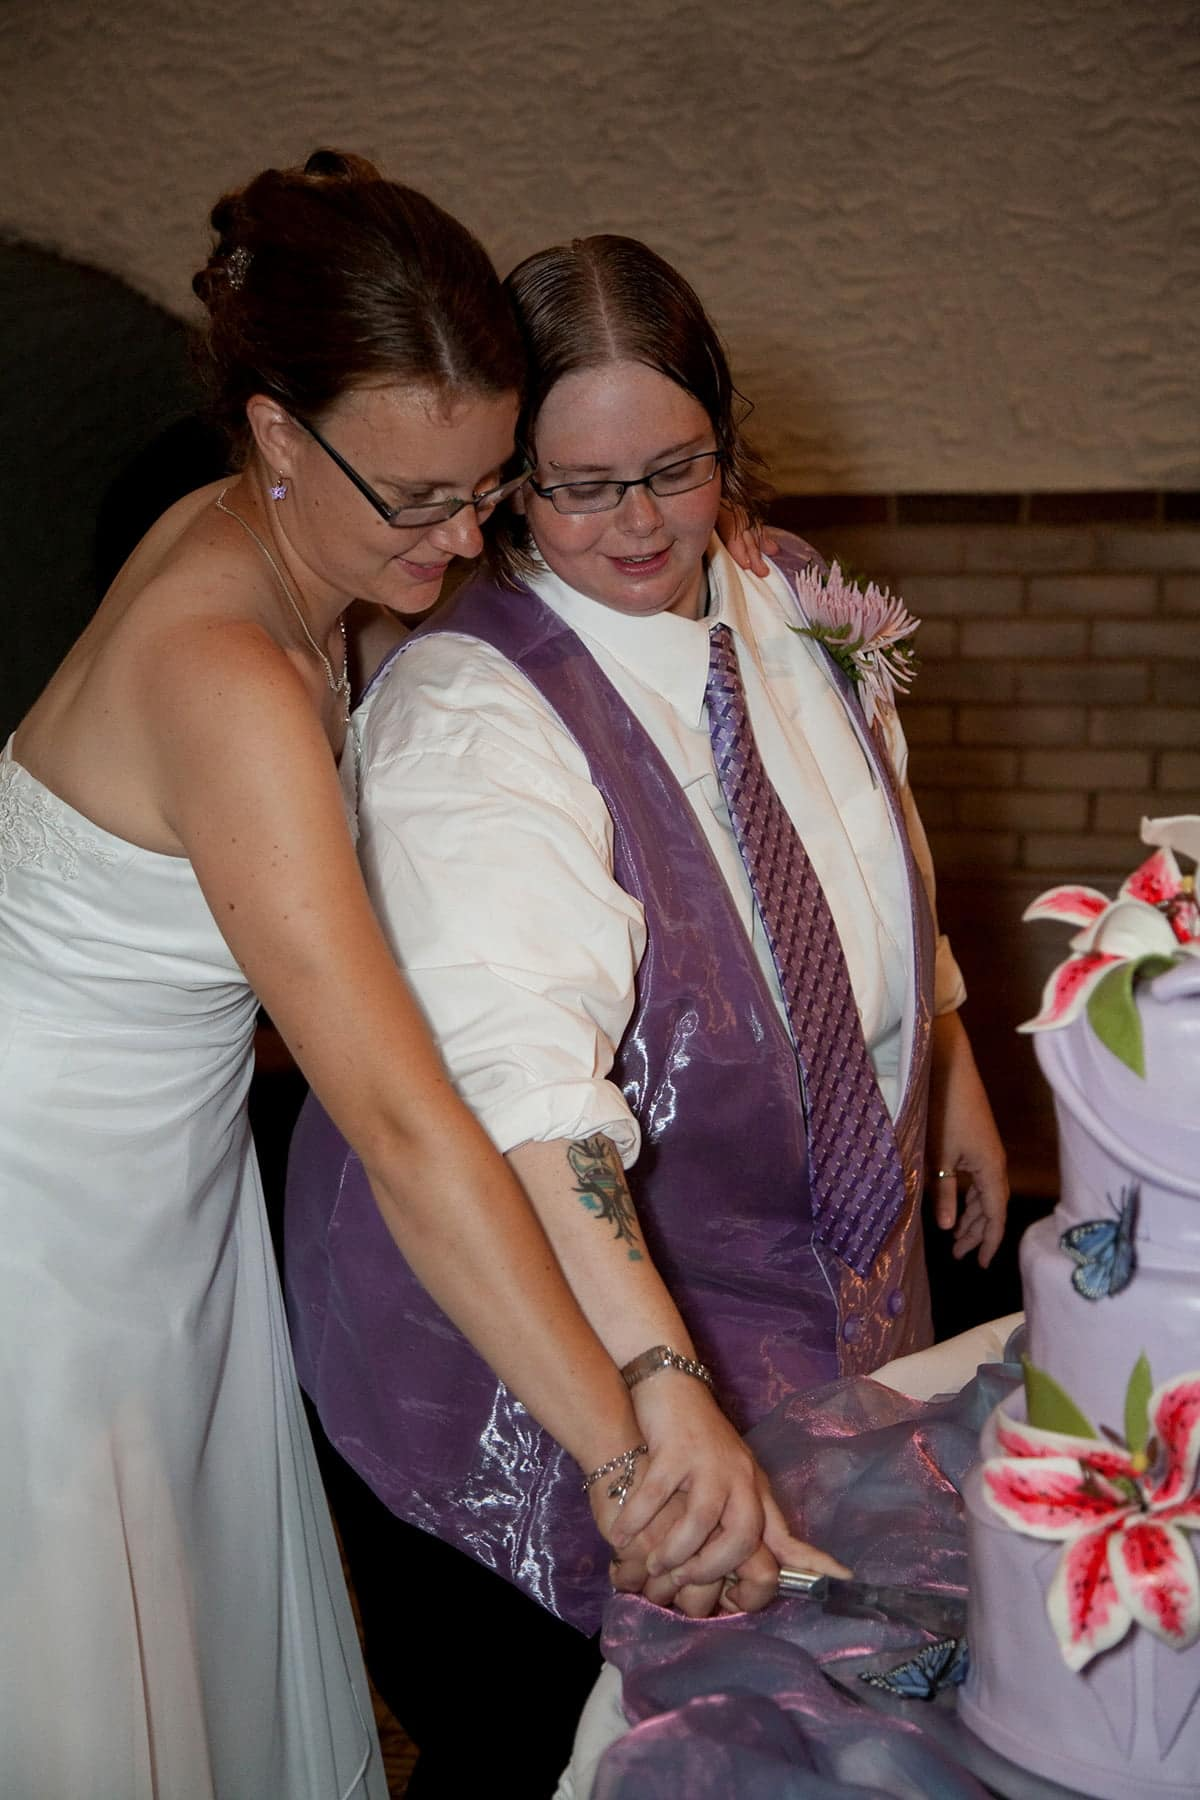 Two women - one in a wedding dress, one in a suit with a purple vest and tie - cut their wedding cake.